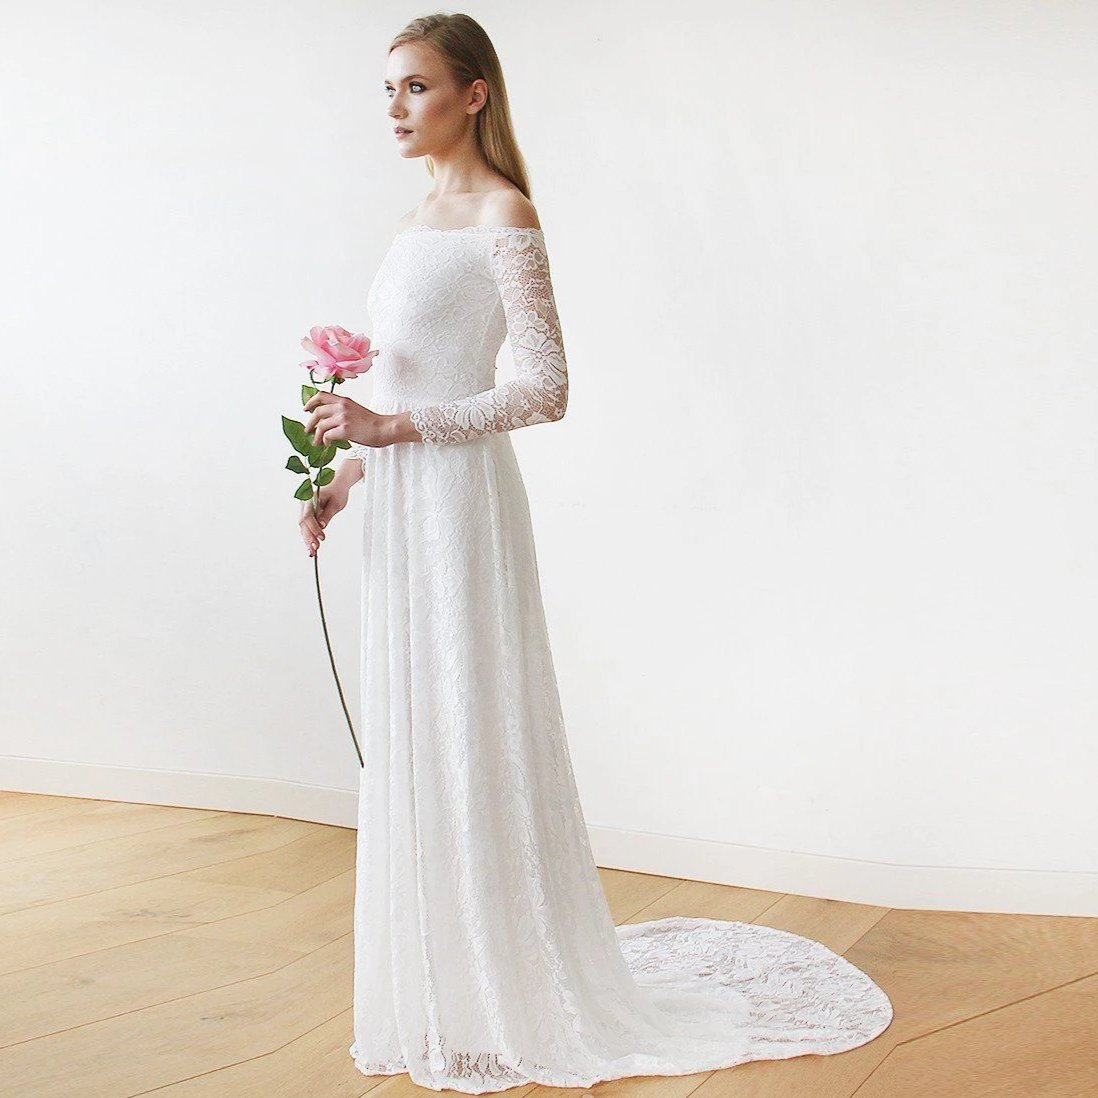 Ivory Off-The-Shoulder Floral Lace Long Sleeve Maxi Dress with Train 1148